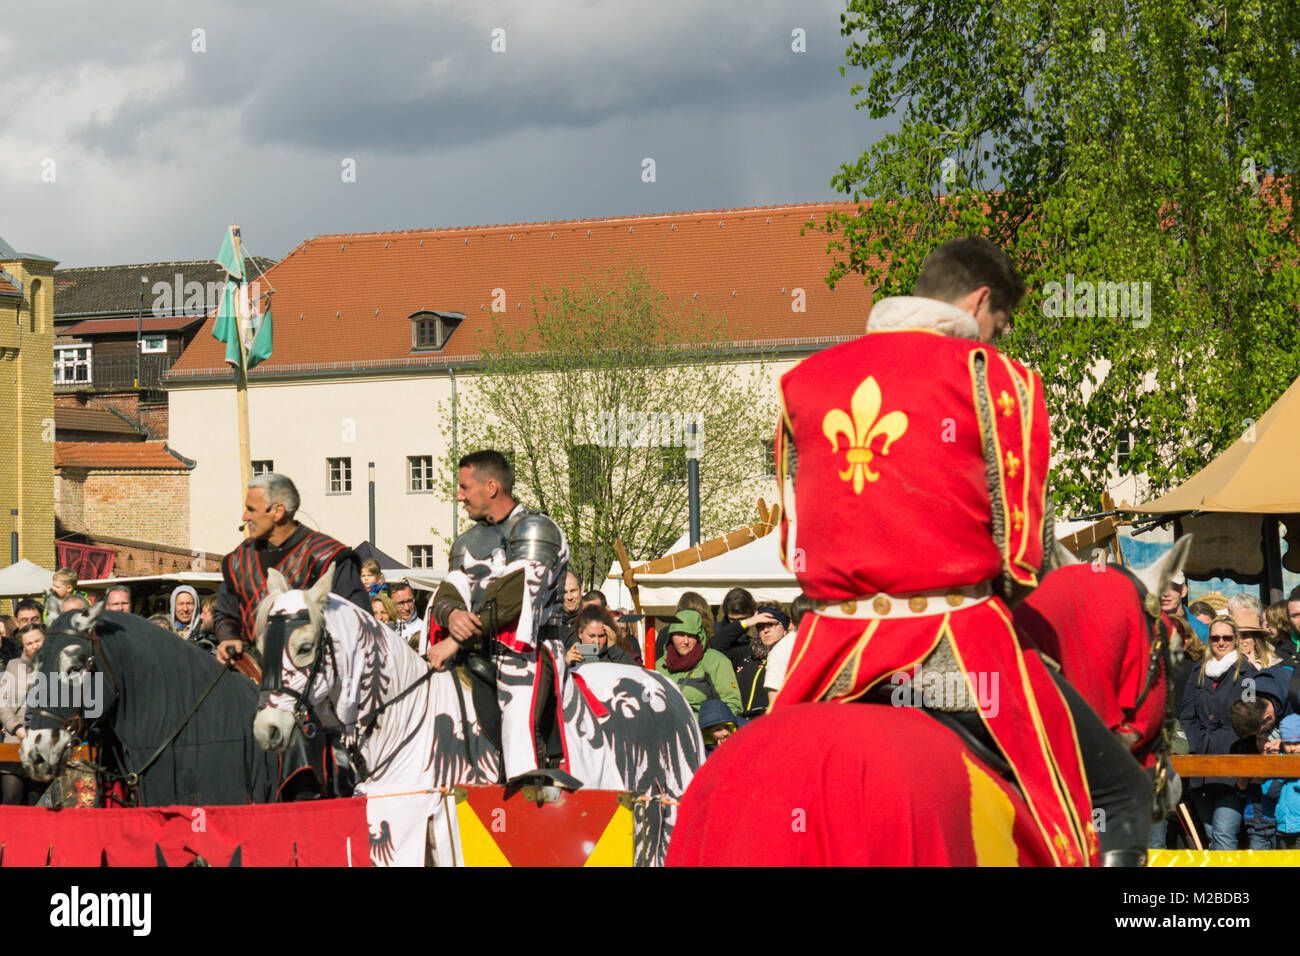 Actors playing horse soldier in a competition during a medieval festival with lots of audience in Germany - Stock Image